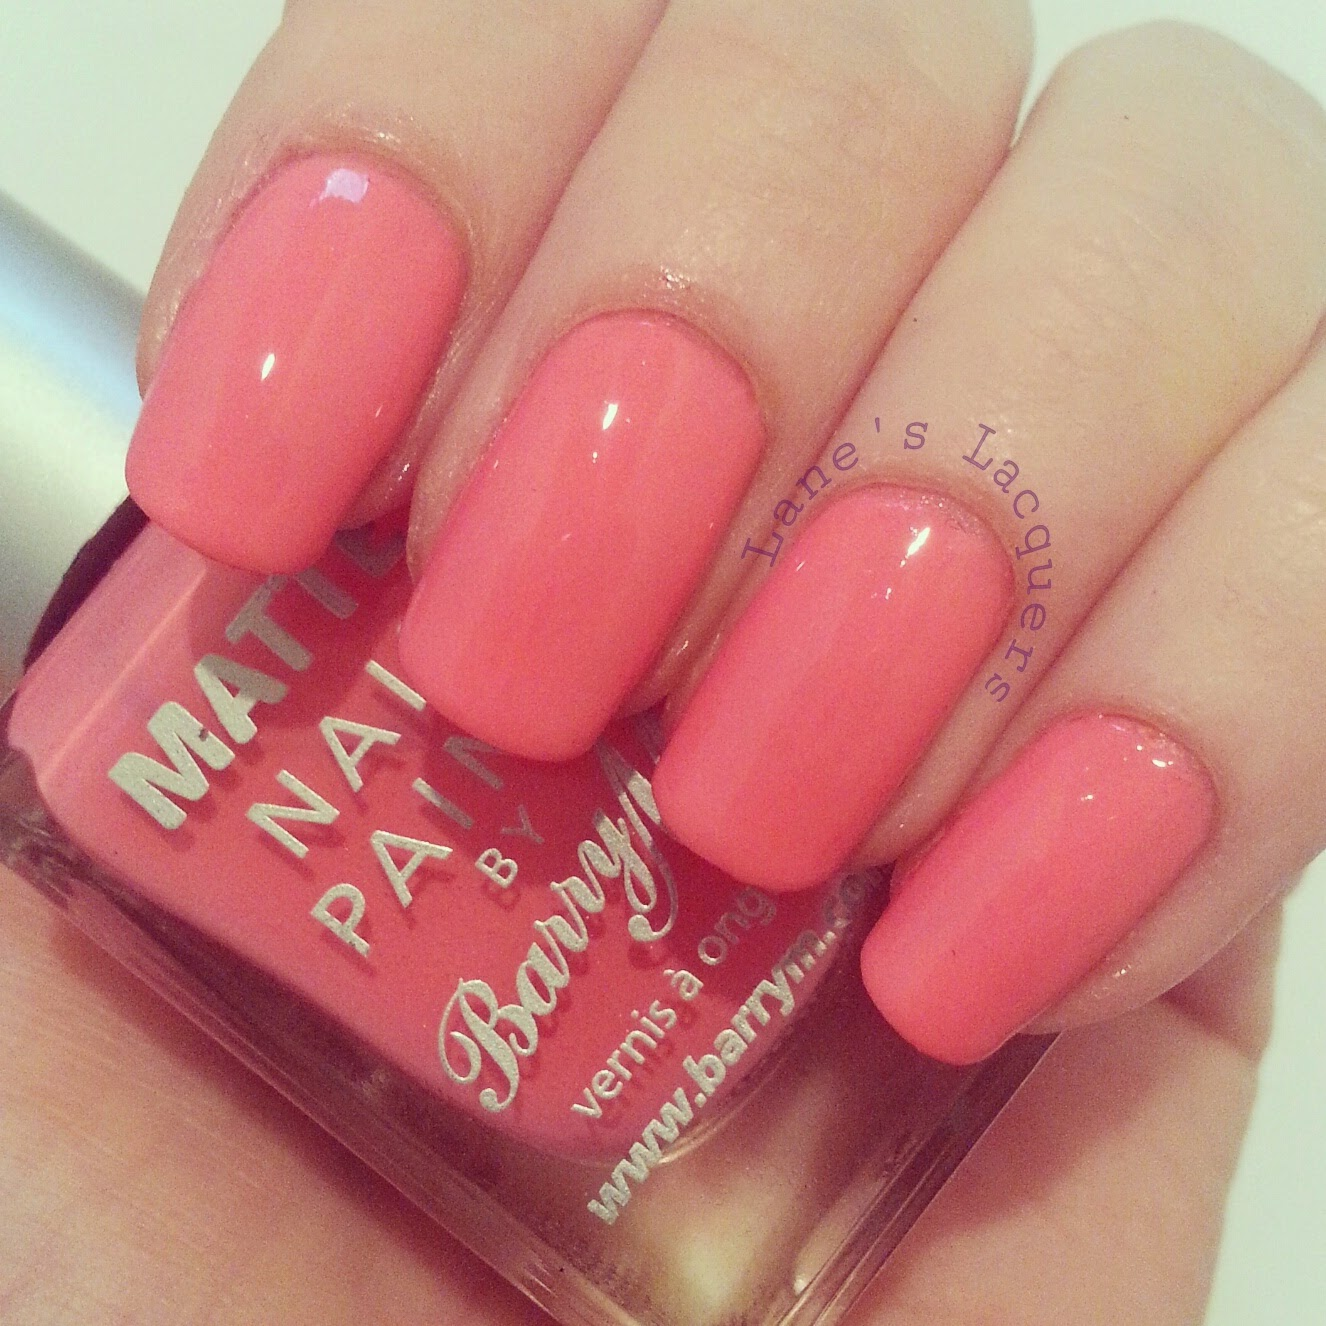 barry-m-miami-swatch-manicure (3)